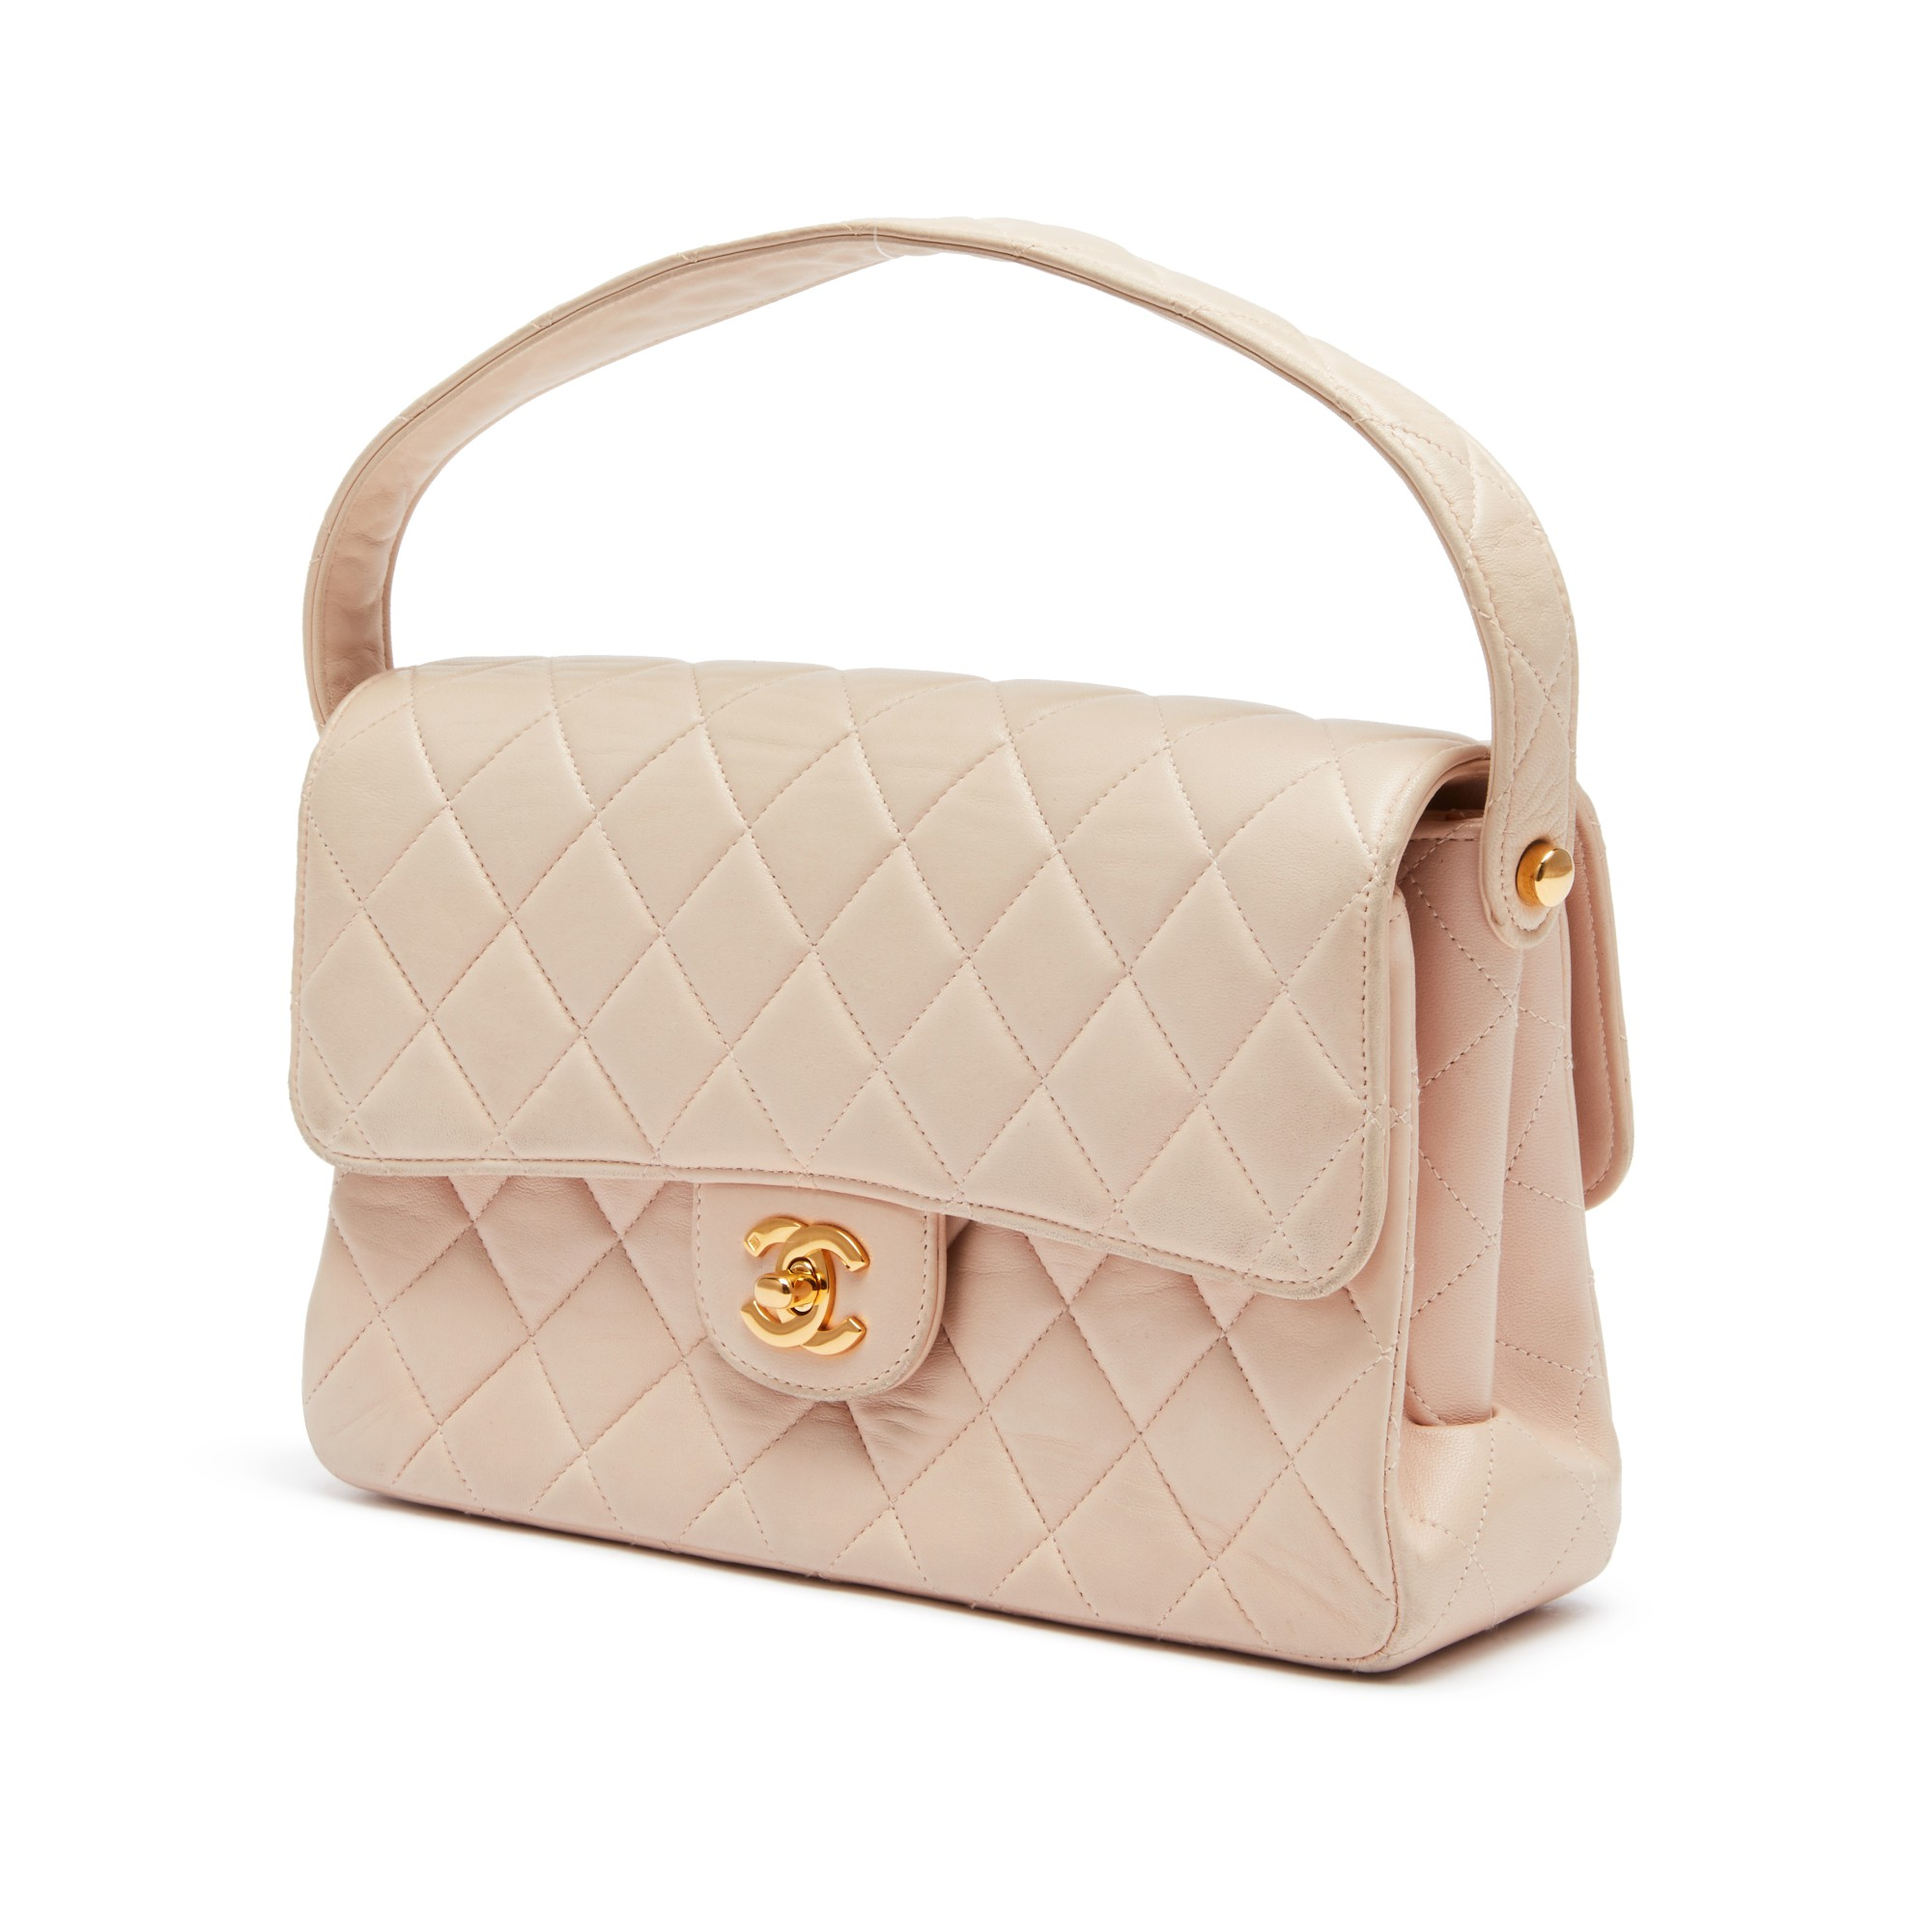 rose-beige-quilted-lambskin-double-face-classic-flap-gold-hardware-1e13